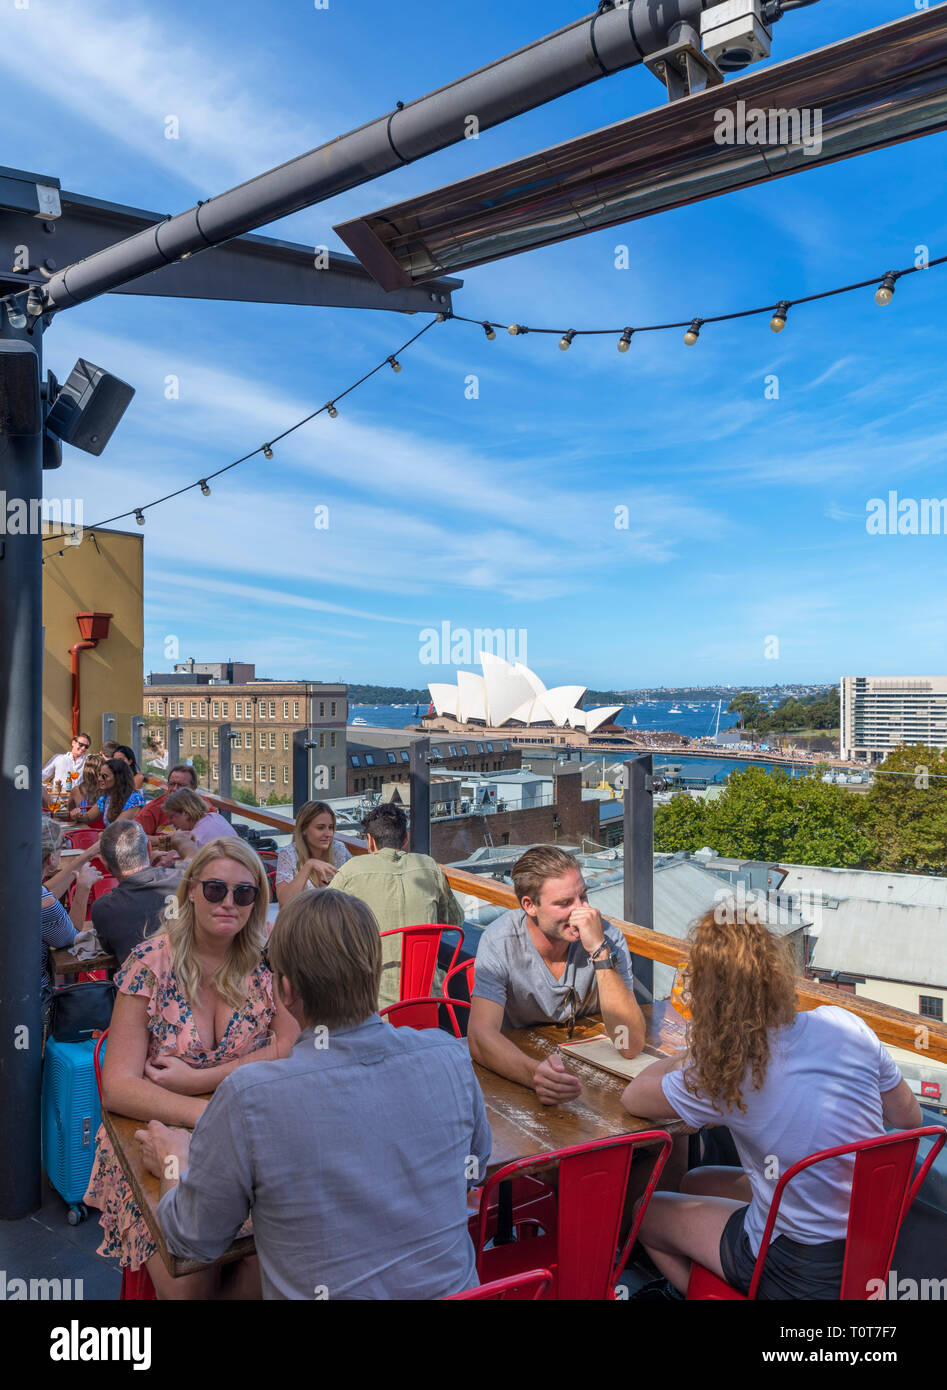 Rooftop bar of the Glenmore Hotel with the Sydney Opera House in the distance, The Rocks, Sydney, Australia - Stock Image